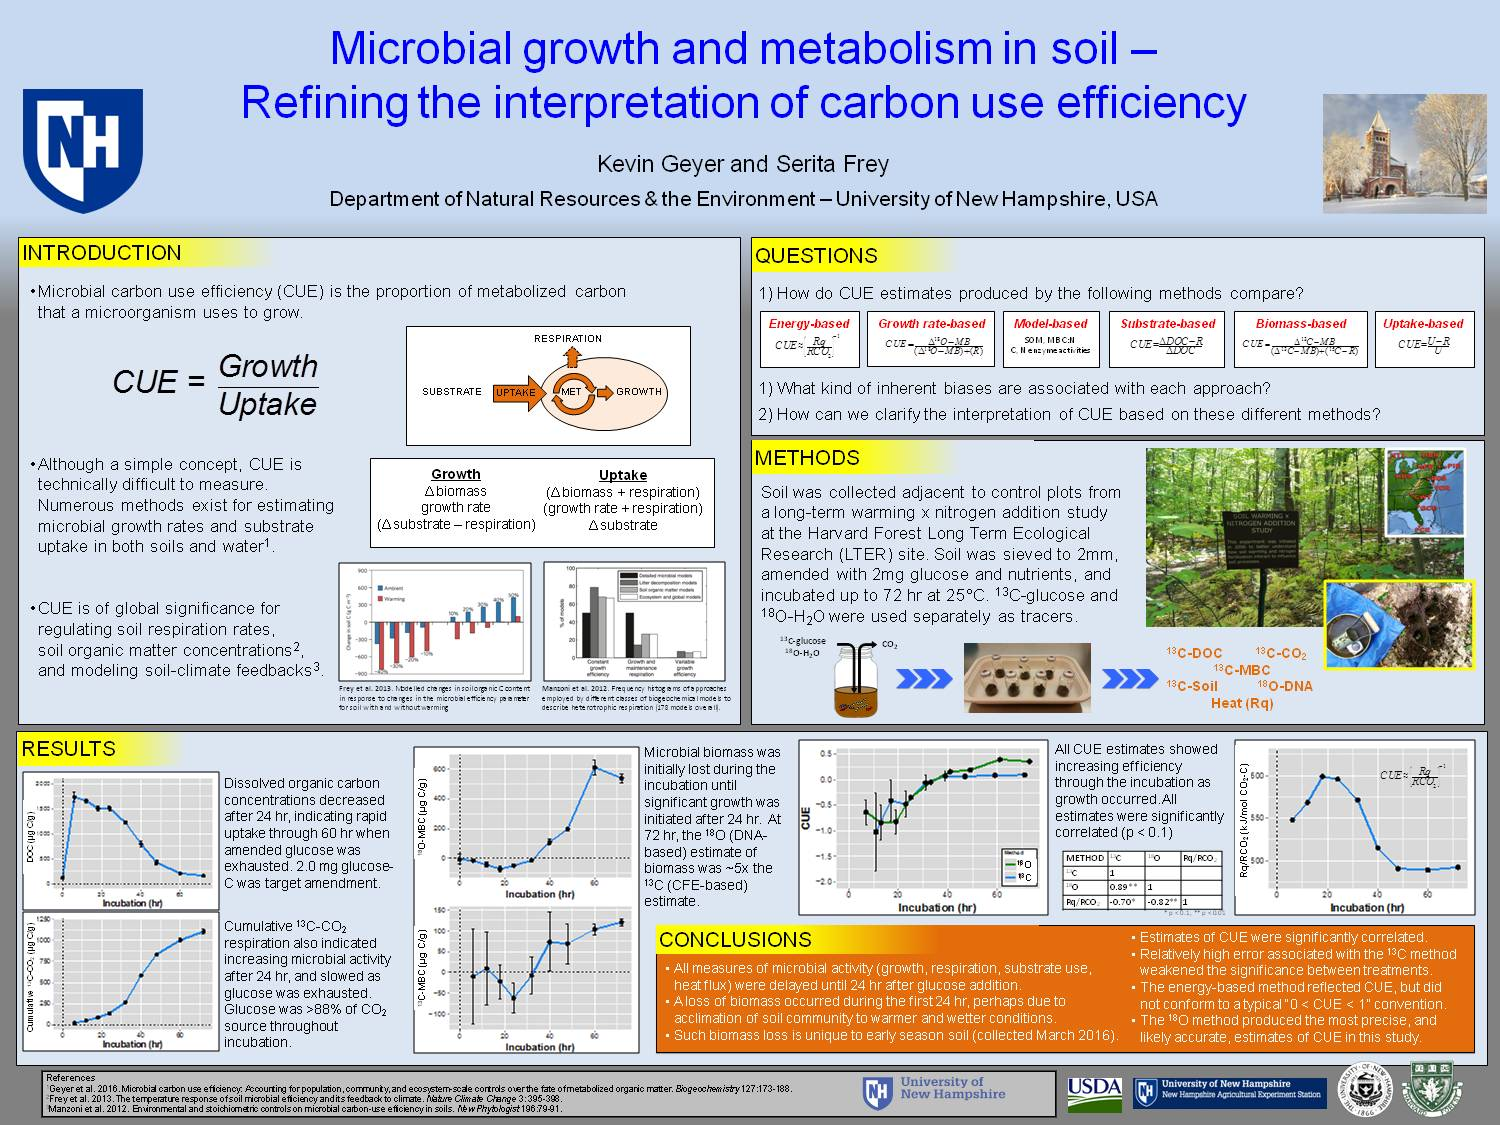 Microbial Growth And Metabolism In Soil by geyerkev